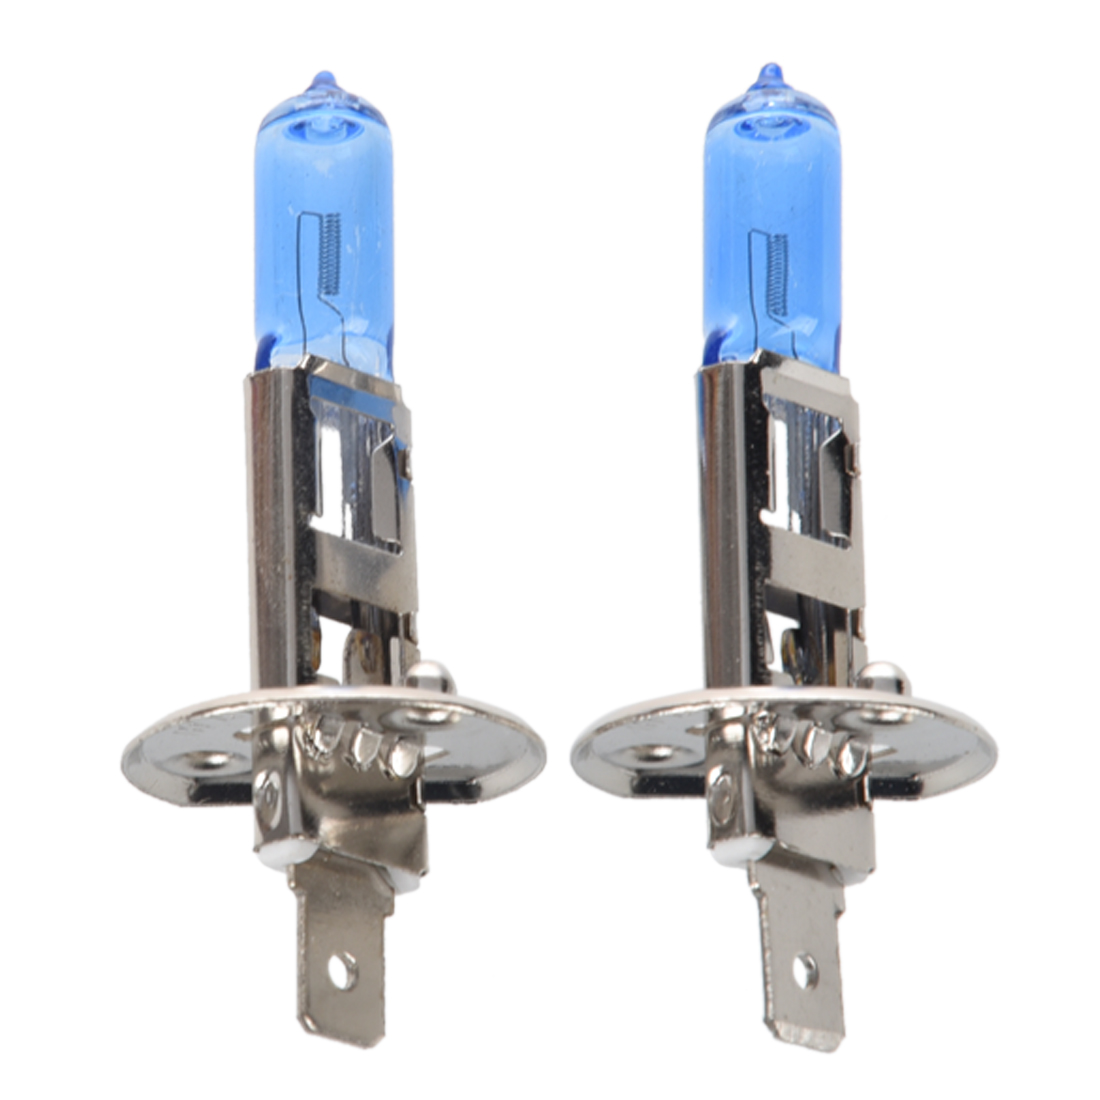 2 X H1 XENON HID SUPER WHITE HEADLIGHT Bulbs Bulb Car